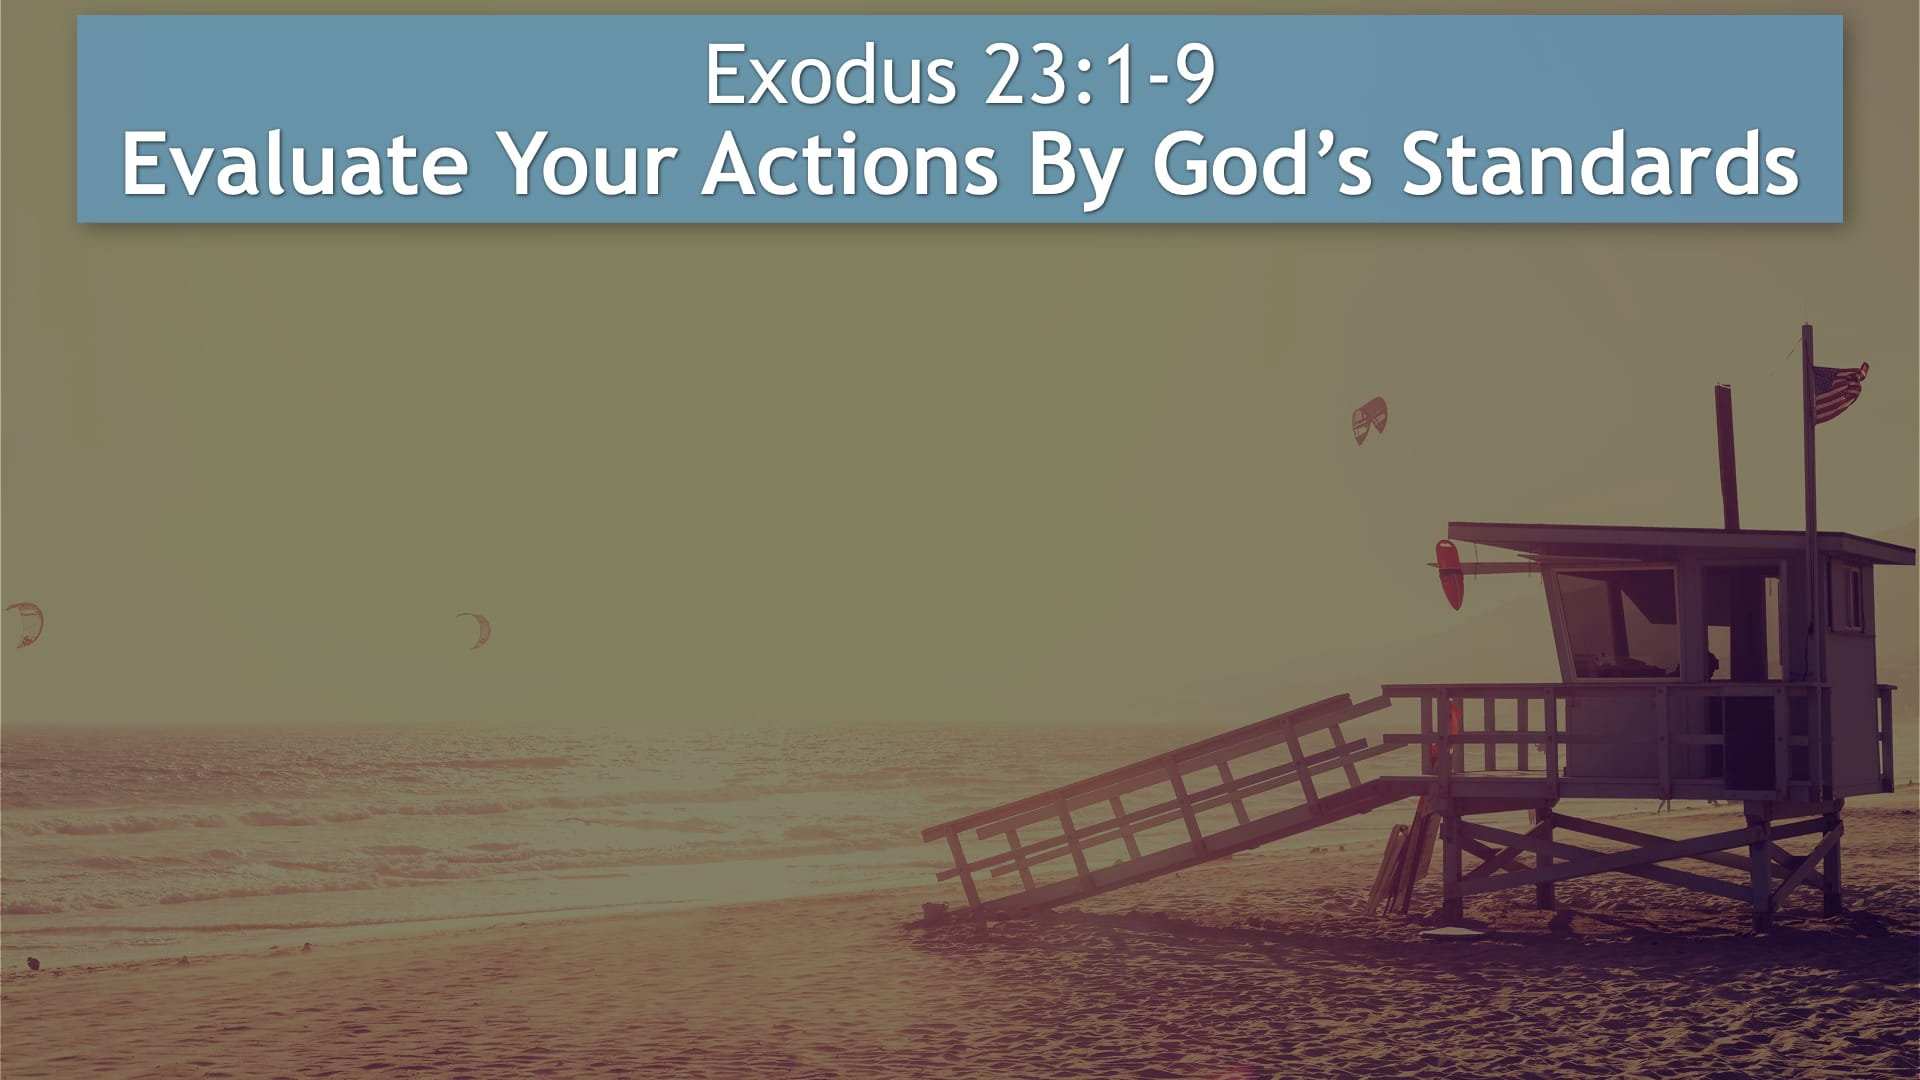 Exodus 23, Evaluate Your Actions By God's Standards